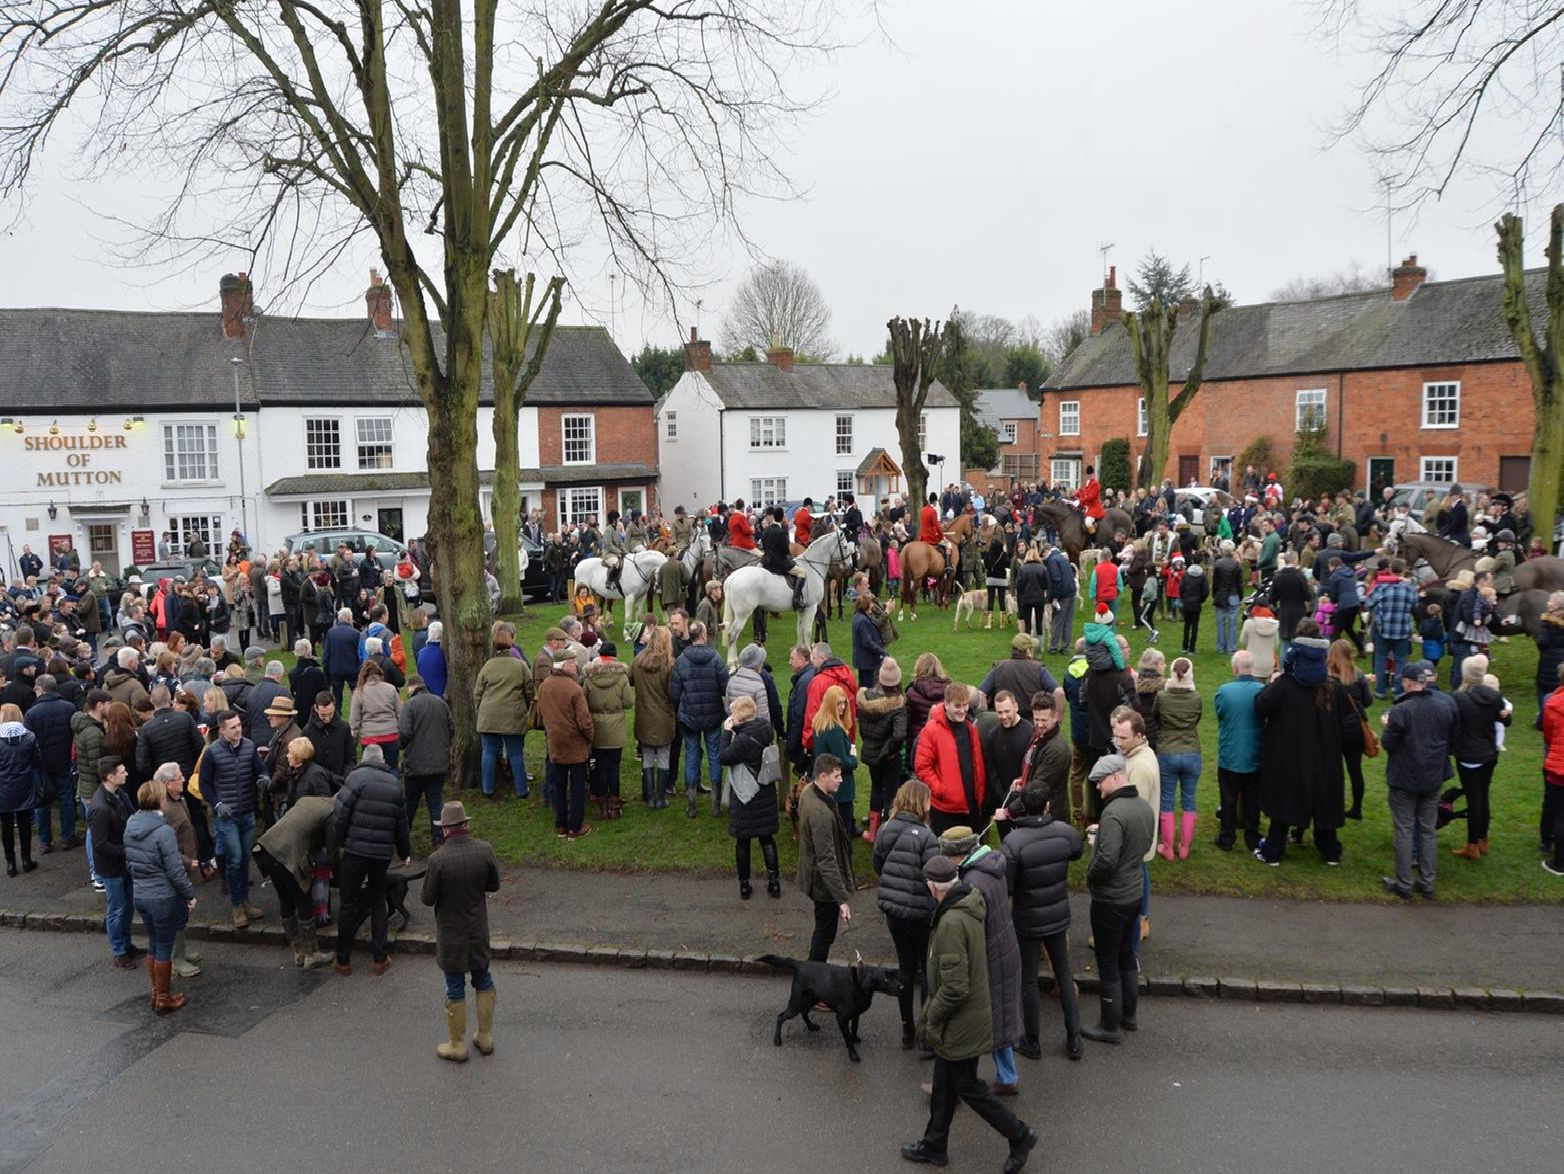 Crowds gather on the green in Great Bowden during the Fernie Boxing Day Hunt meet. PICTURE: ANDREW CARPENTER